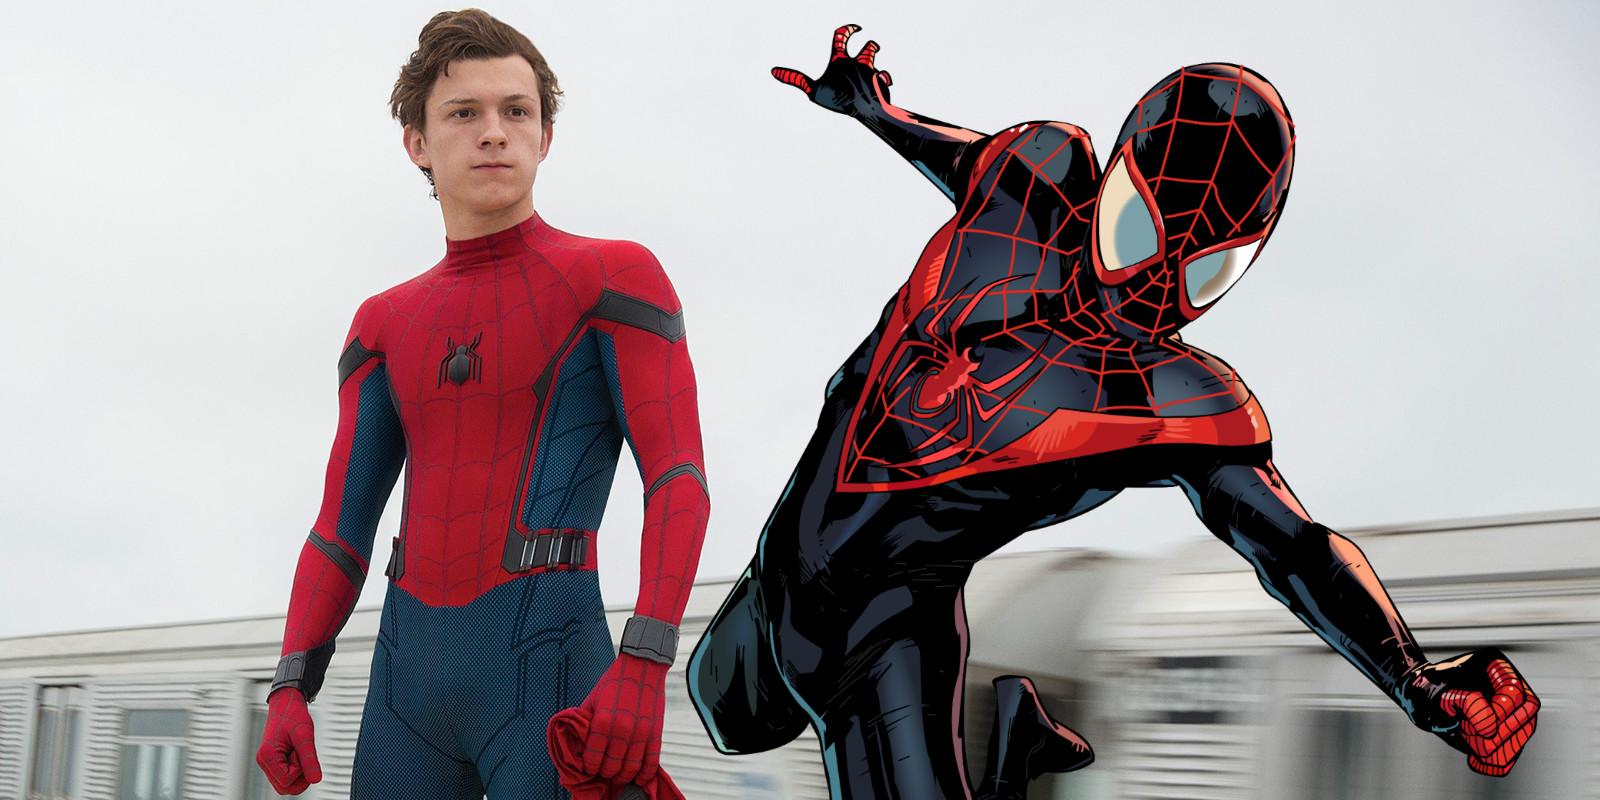 Photo of Kevin Feige Confirmed That MCU Would Have Not One But 2 Spidermen